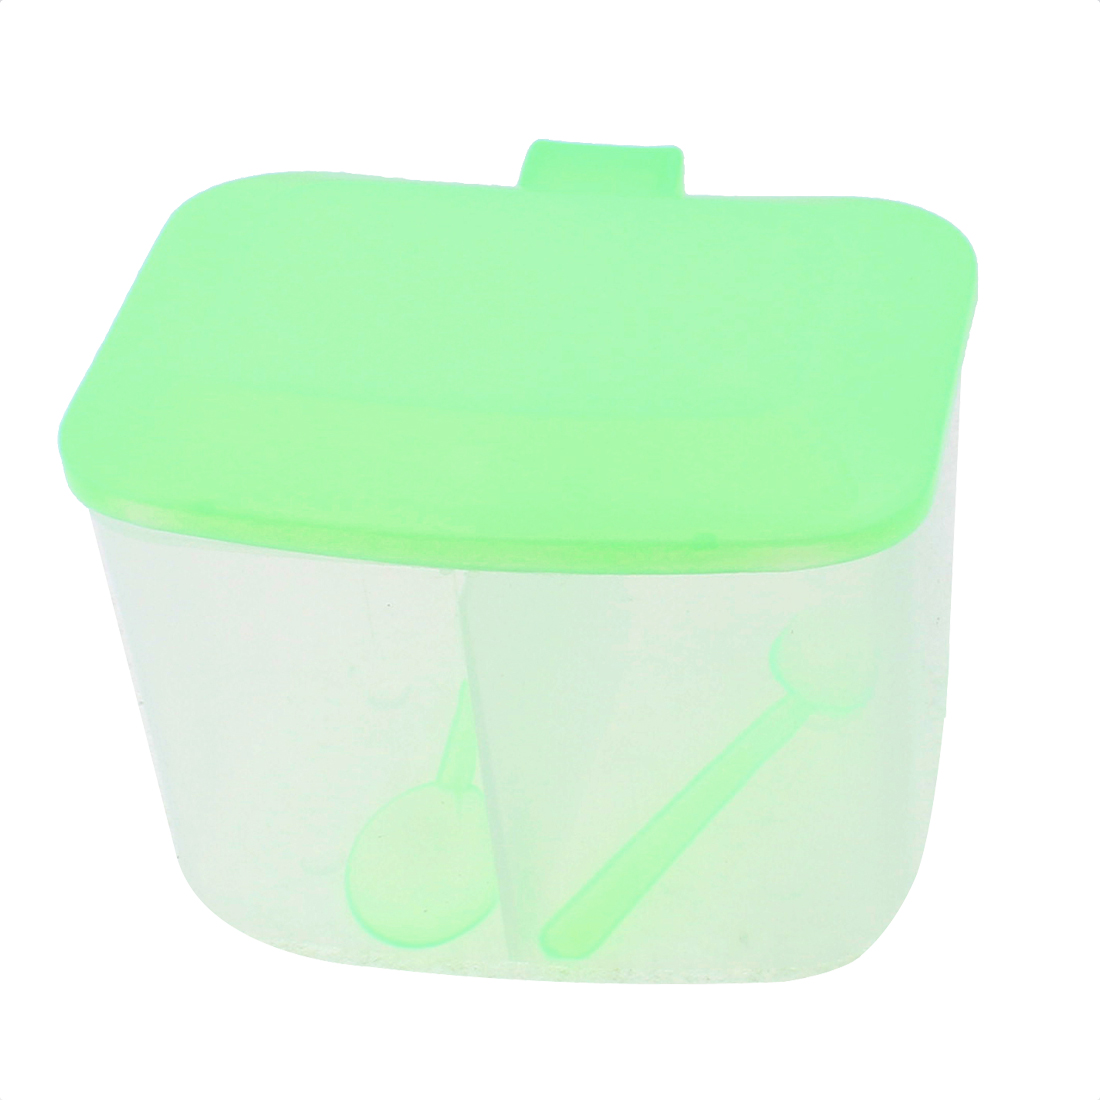 Plastic 2 Compartments Condiment Container Holder Light Green w 2pcs Spoons